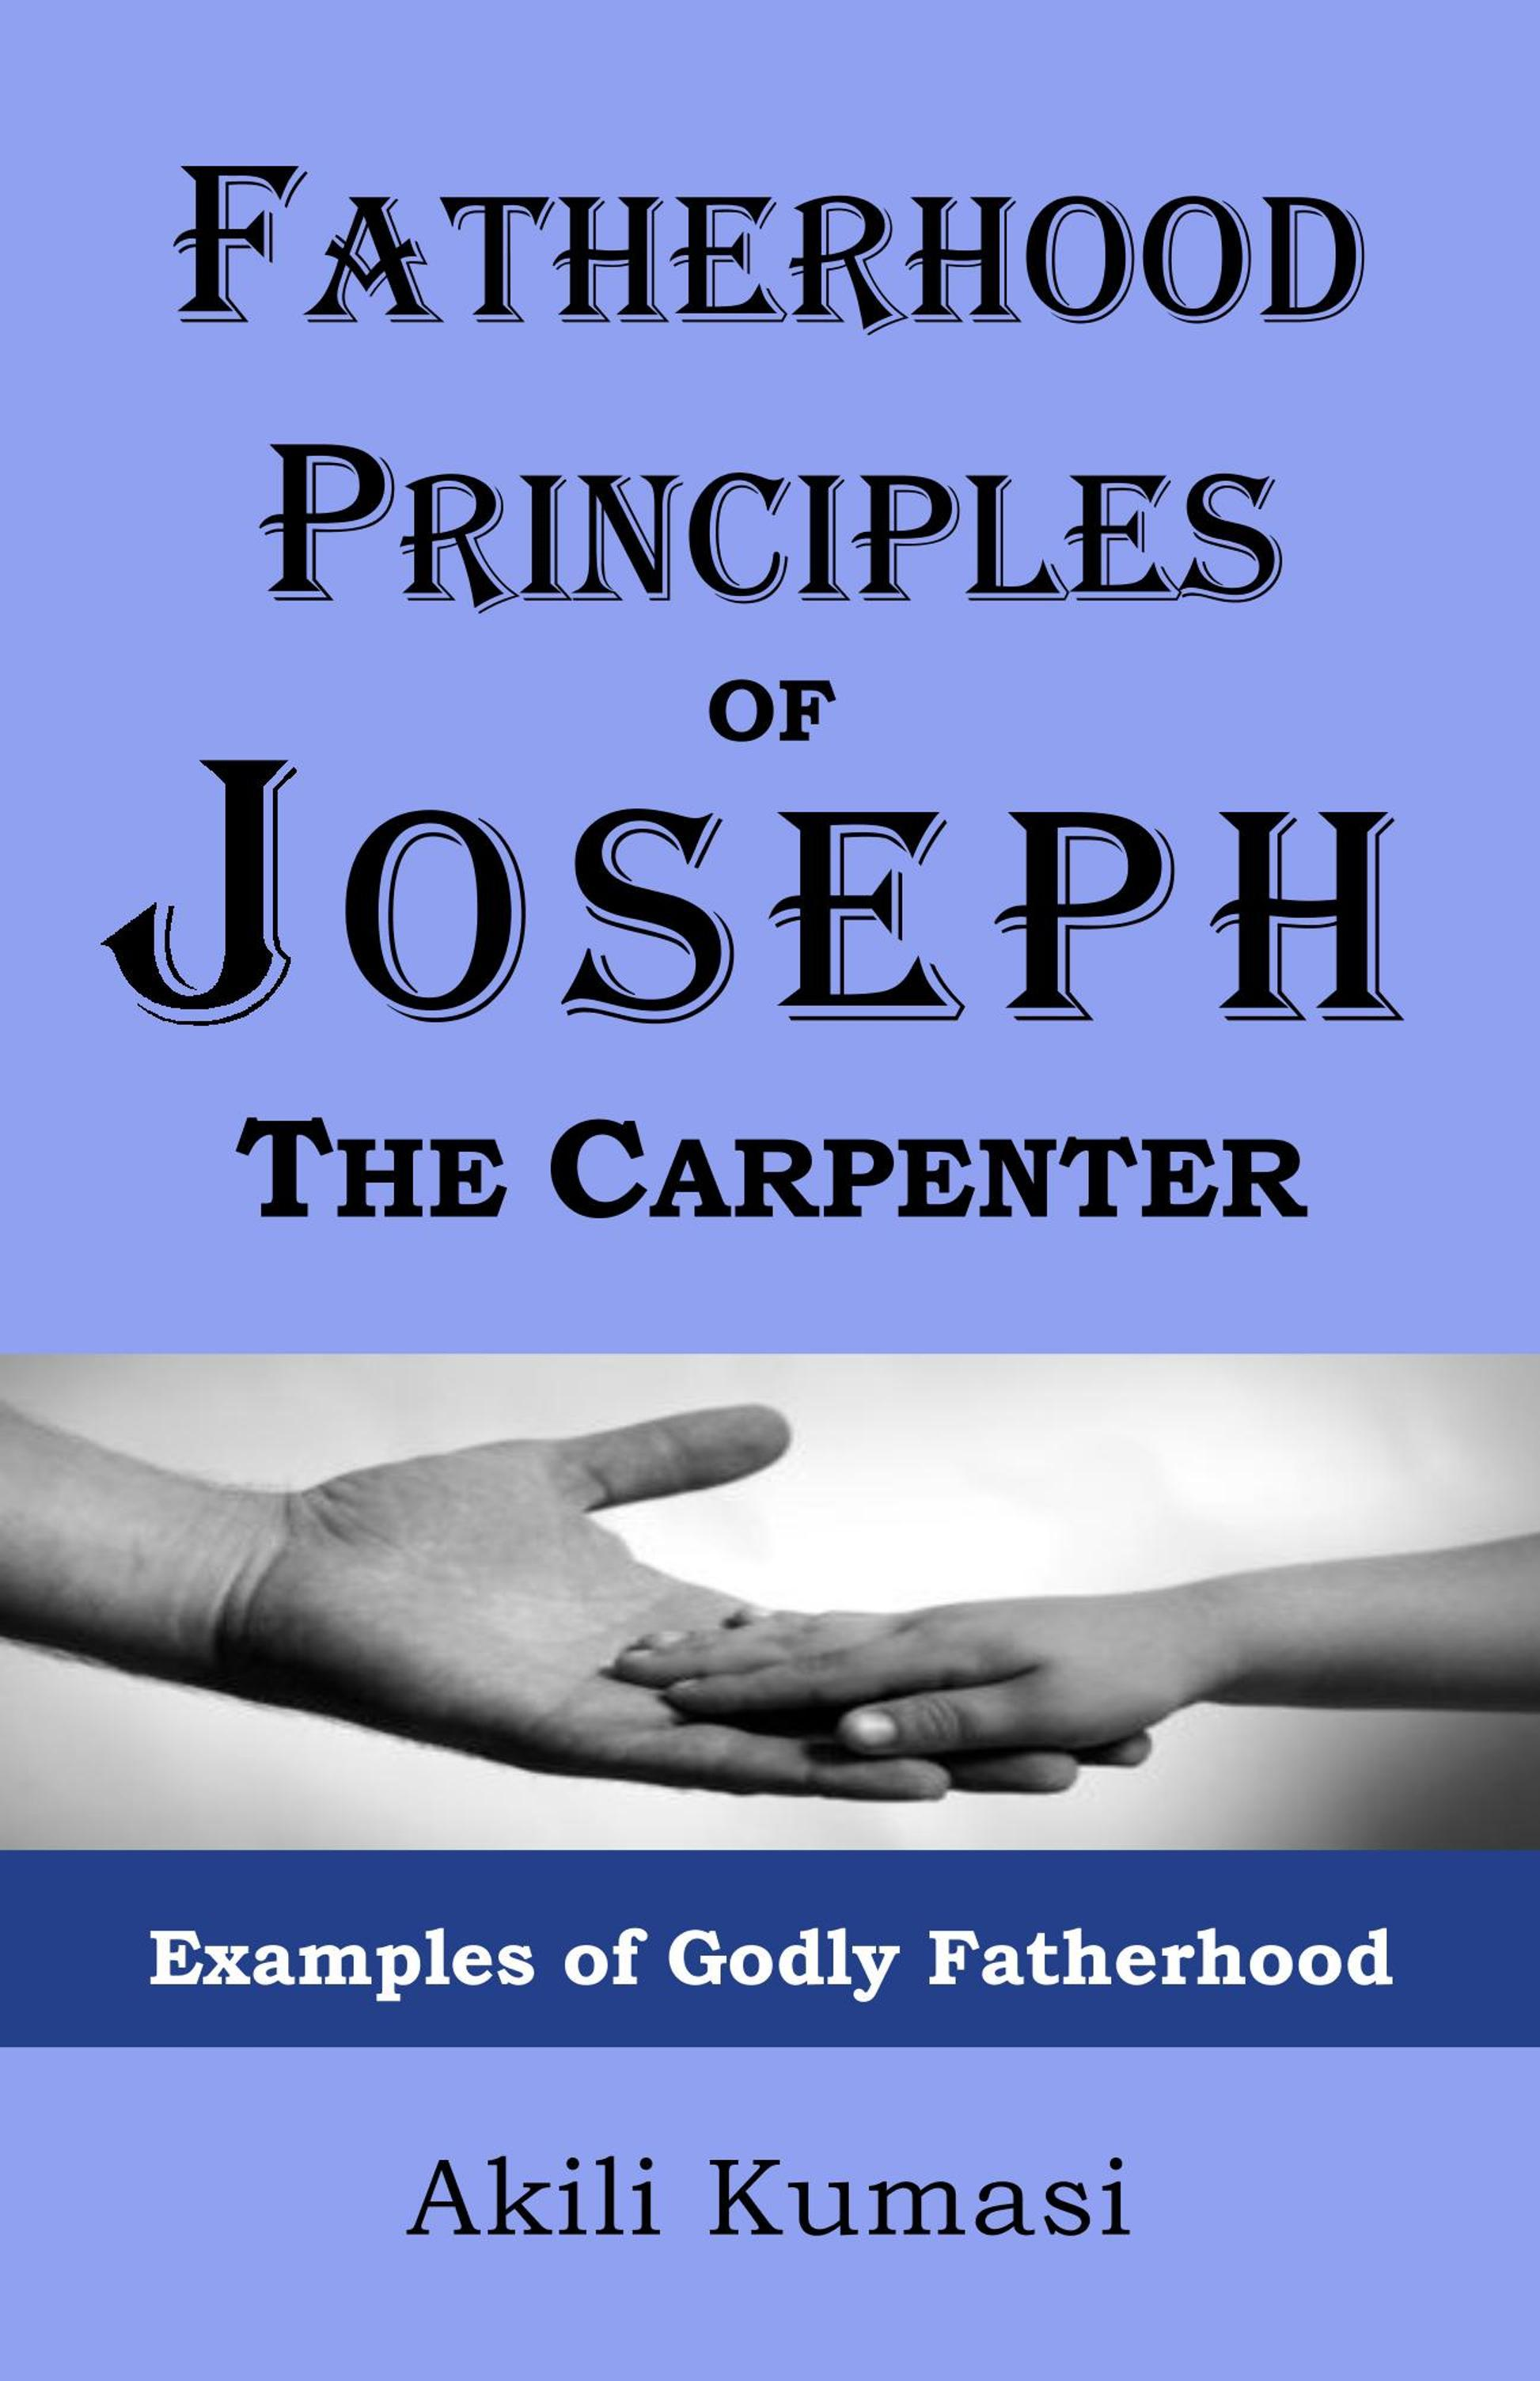 Fatherhood Principles of Joseph the Carpenter: Examples of Godly Fatherhood